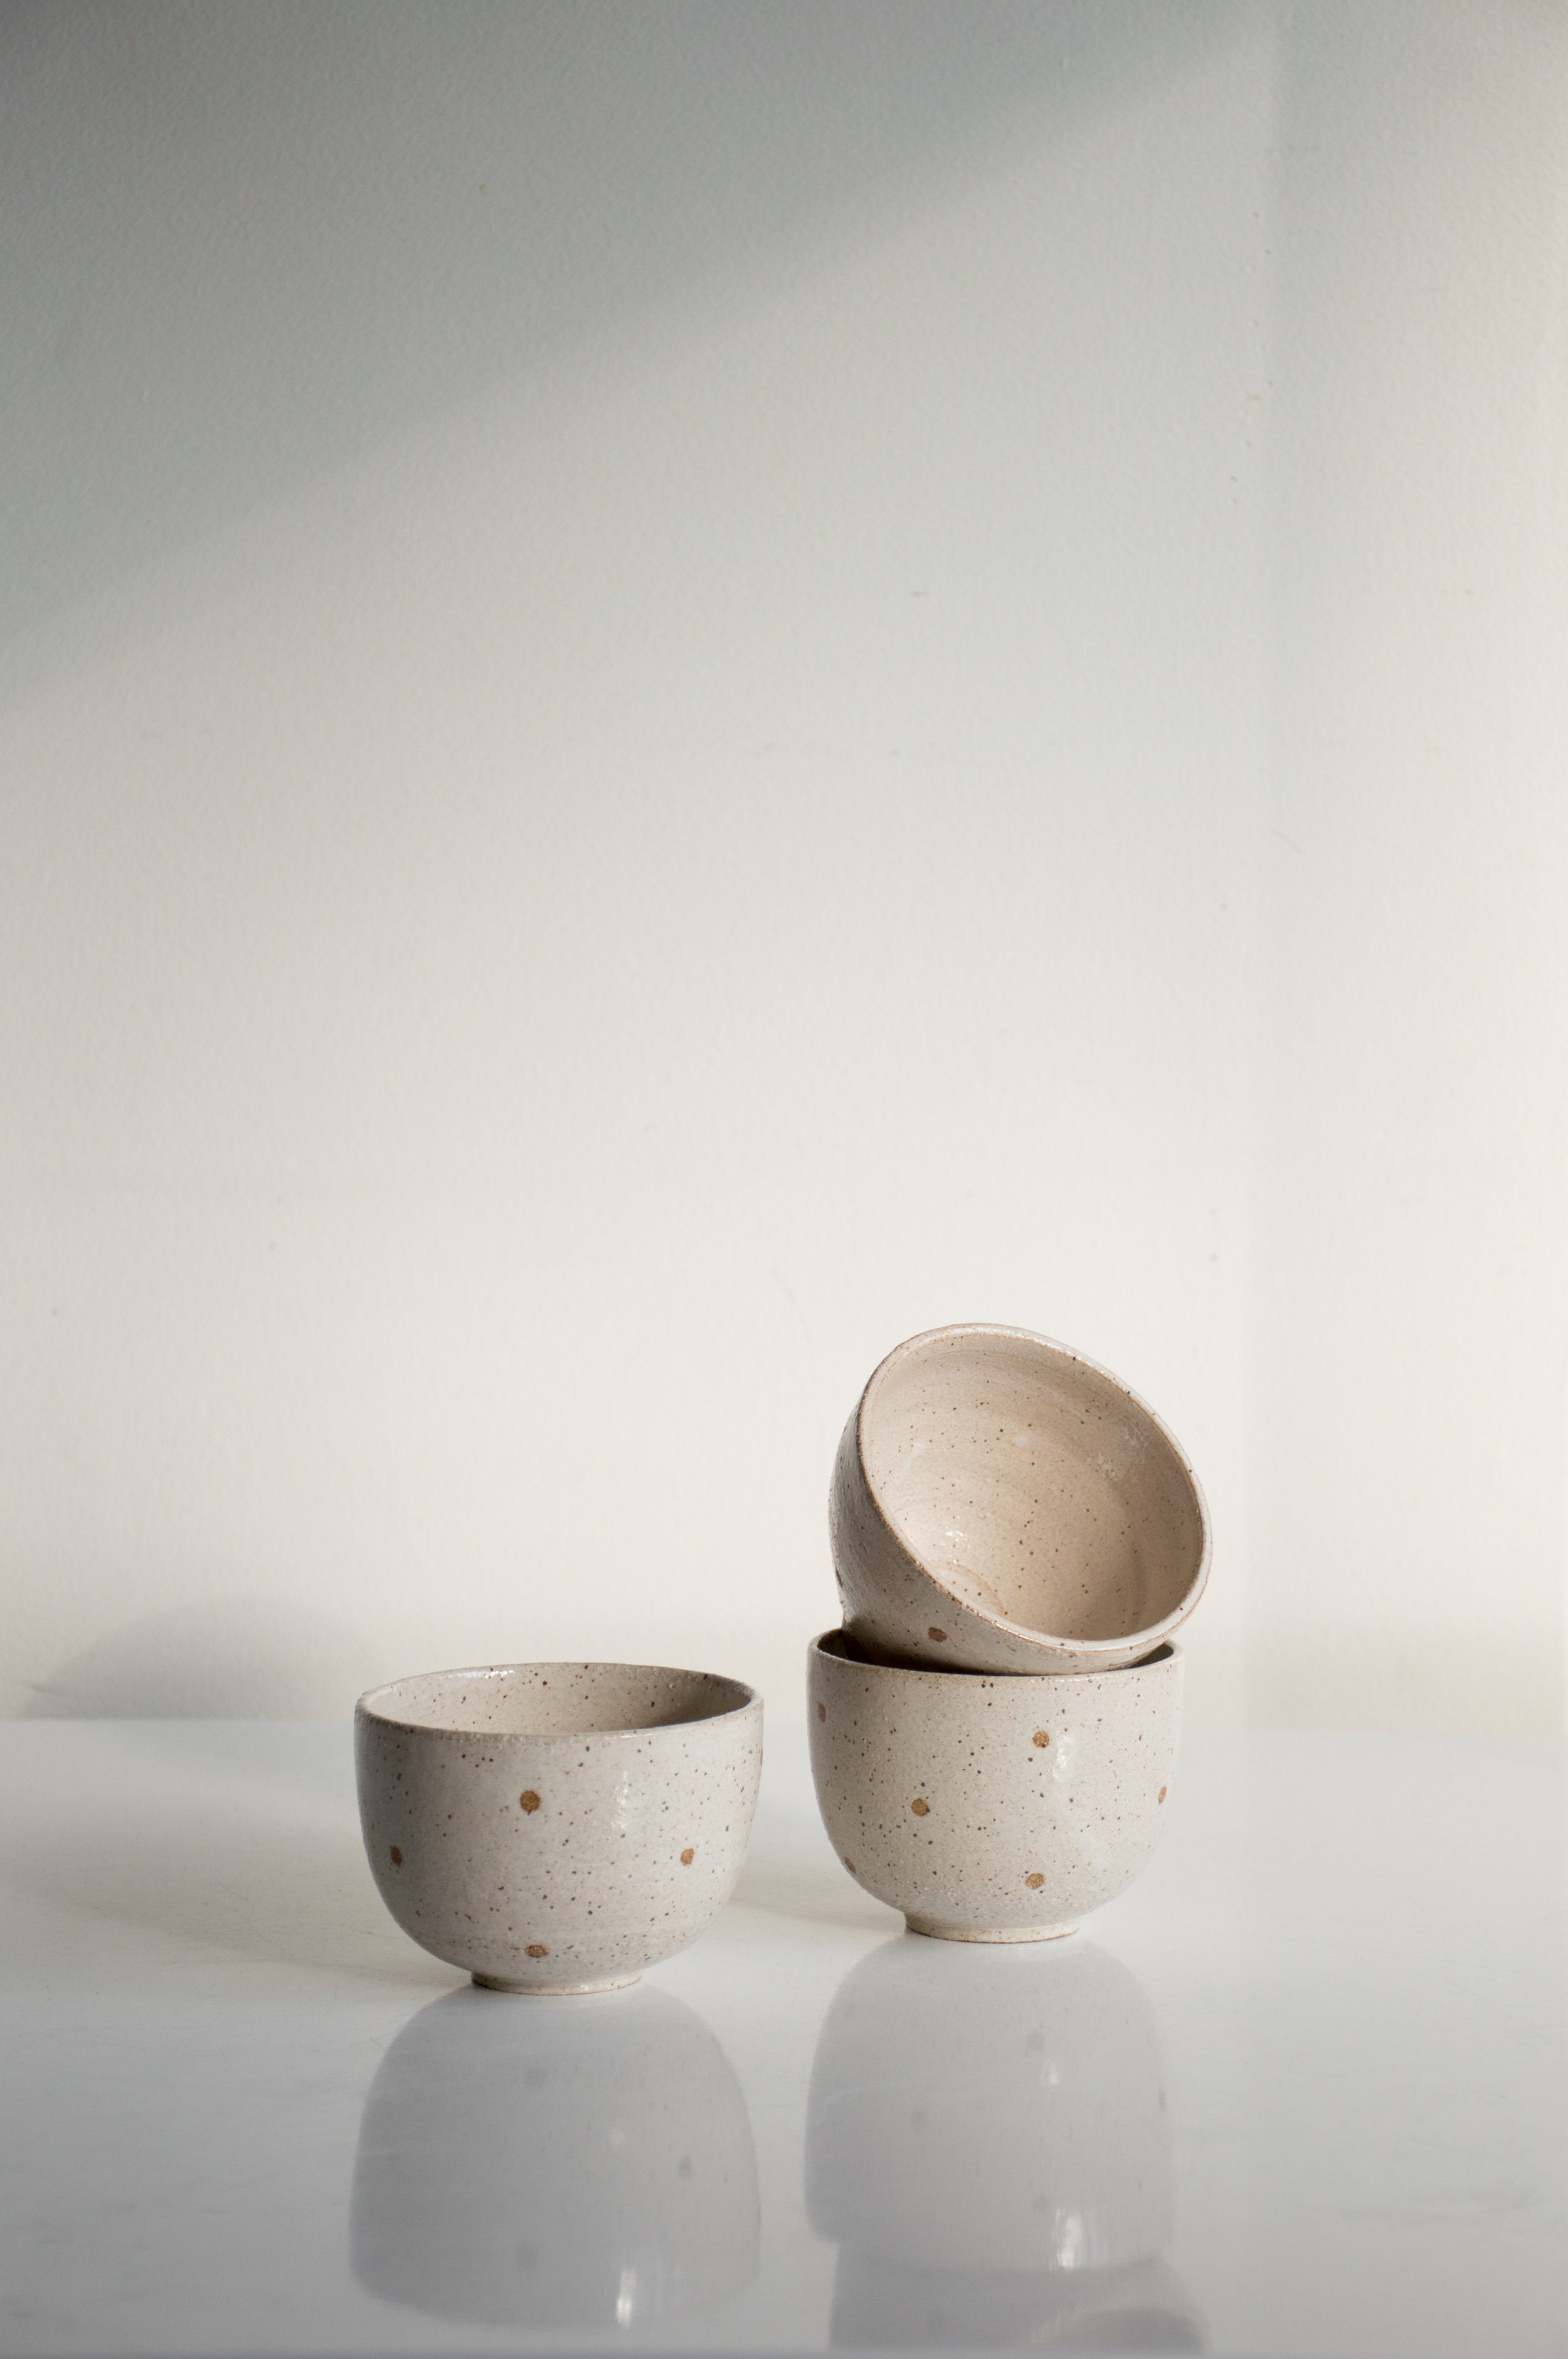 Dotted Bowl - Versatile bowl for daily useDimensions | 2.5